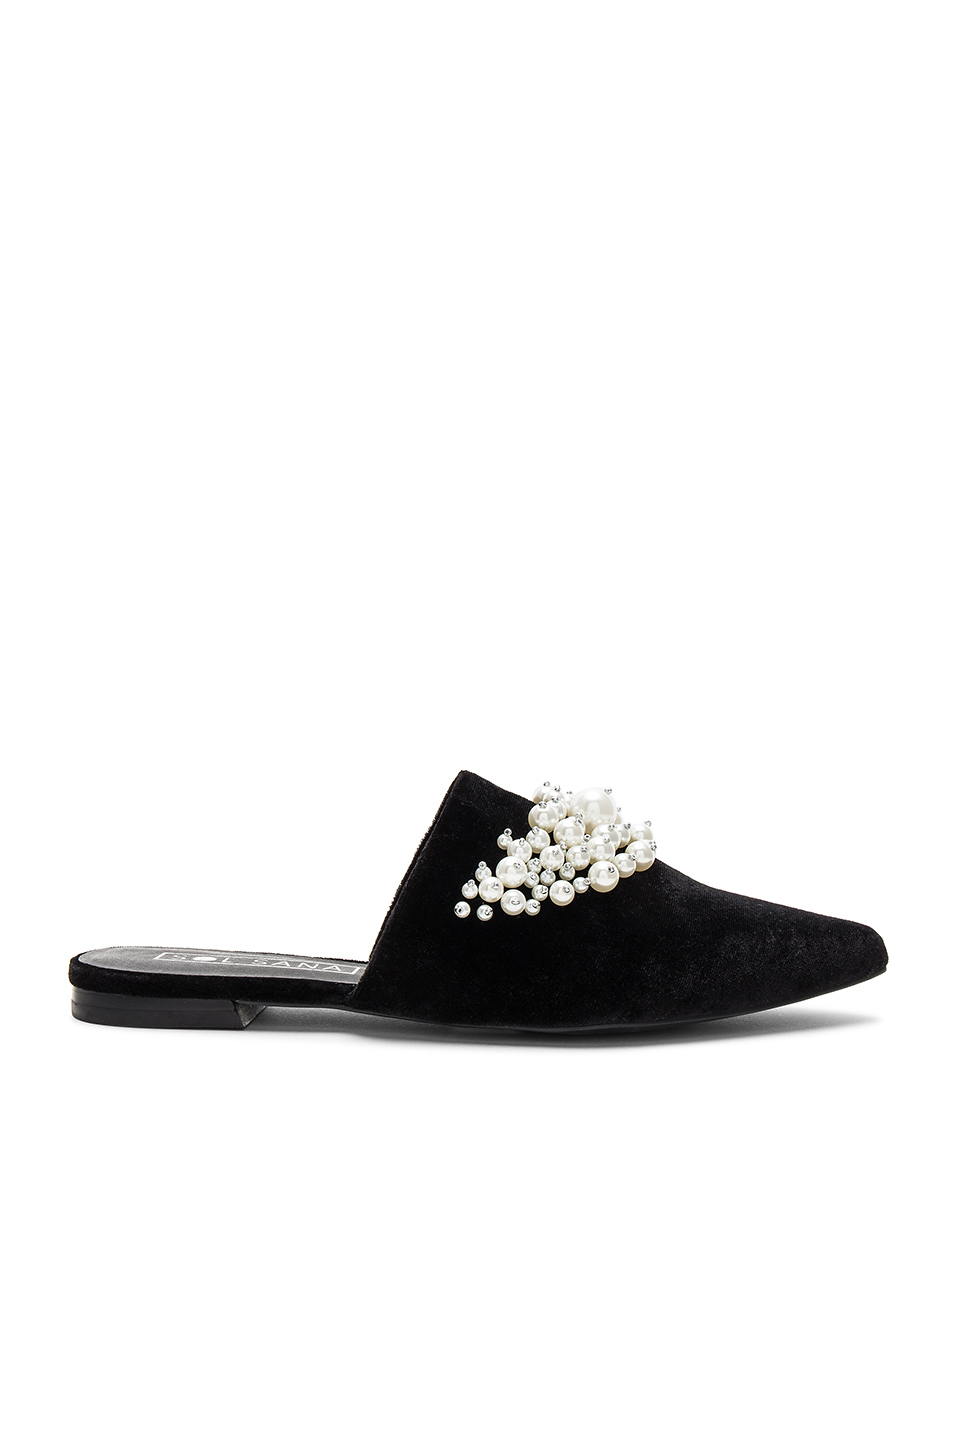 Sol Sana Grace Slide in Black Velvet Pearl